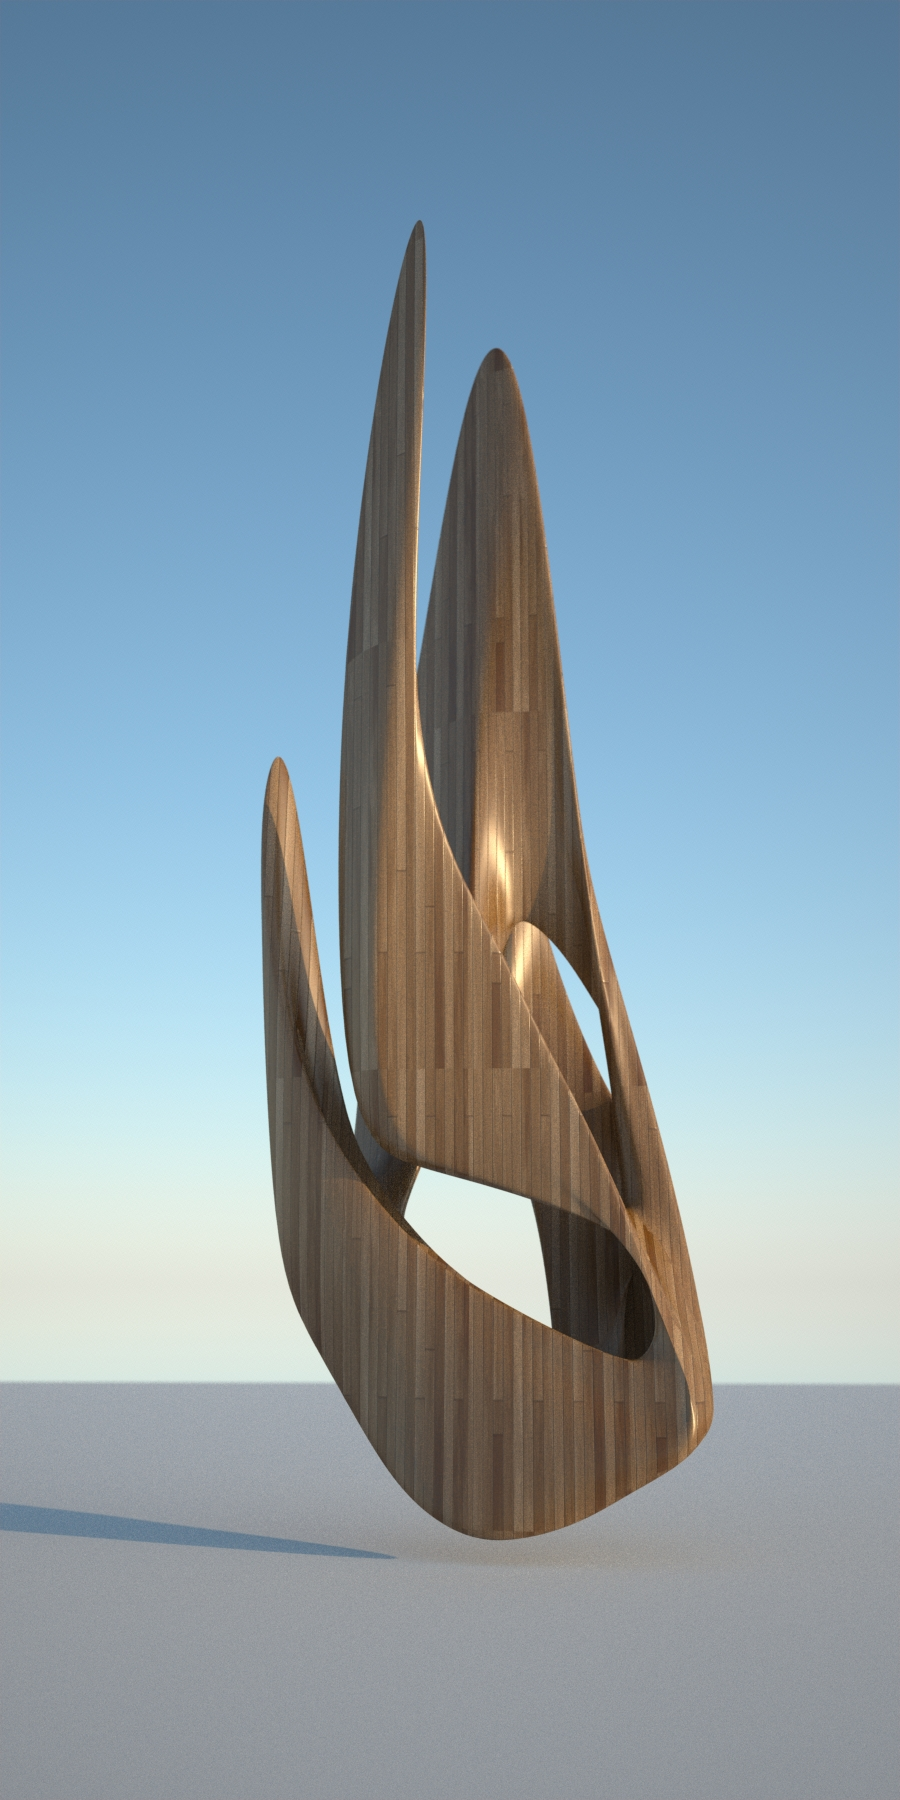 EK_Sculpture_08v.jpg